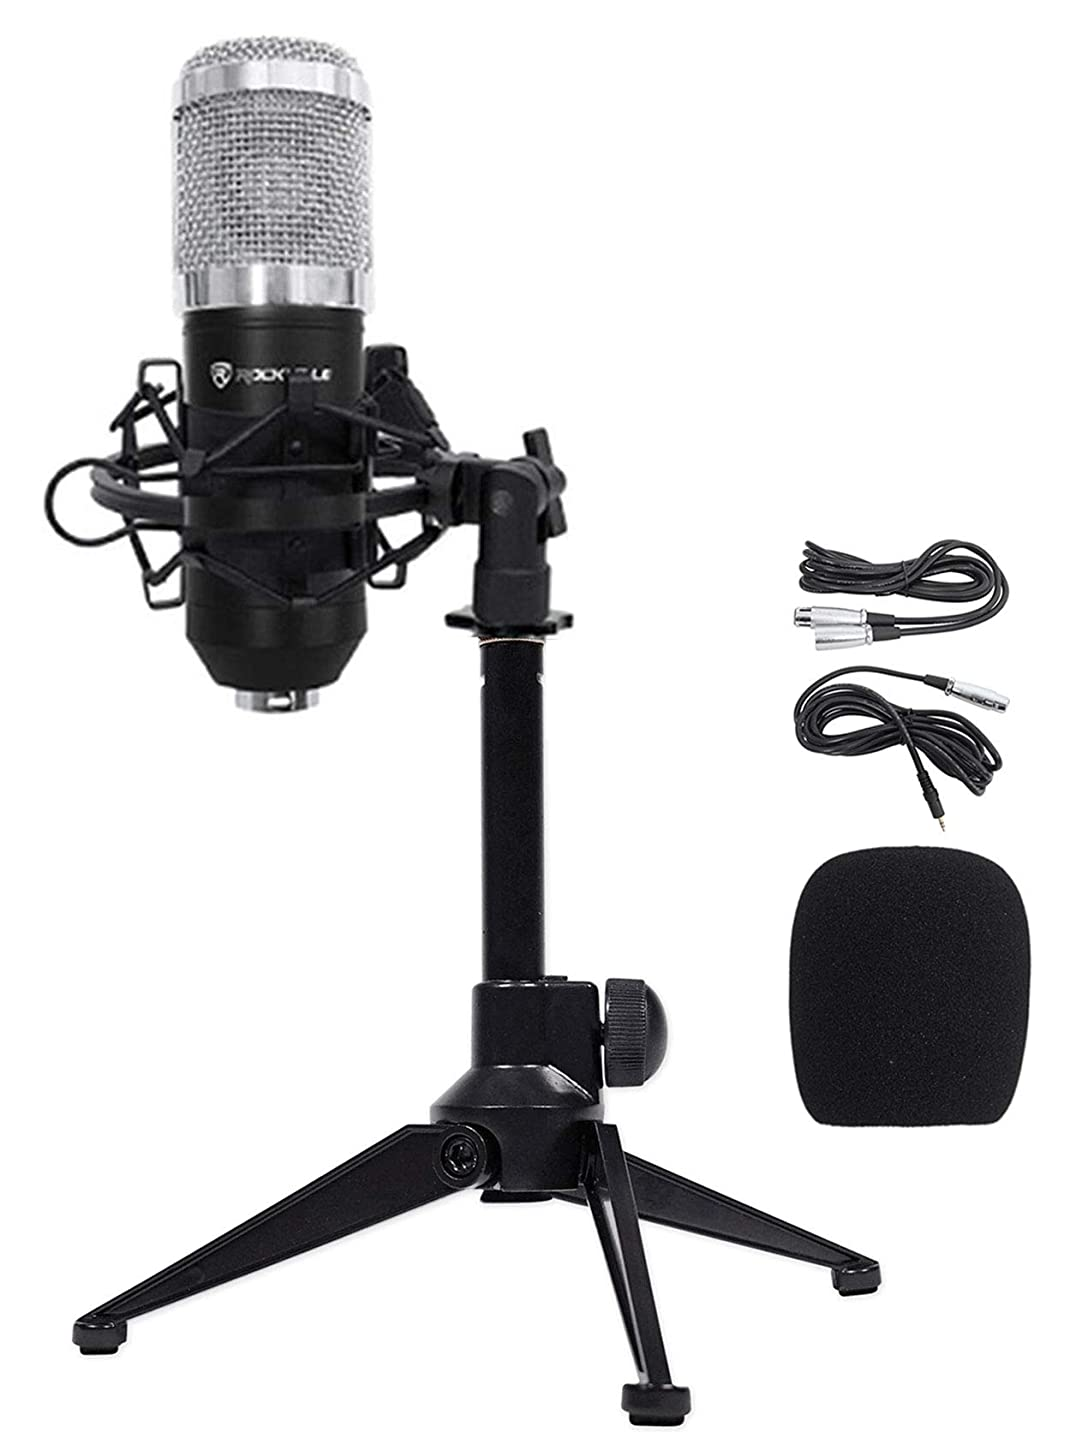 Rockville RCM01 PC Gaming Twitch Microphone Streaming Recording Game Mic+Tripod